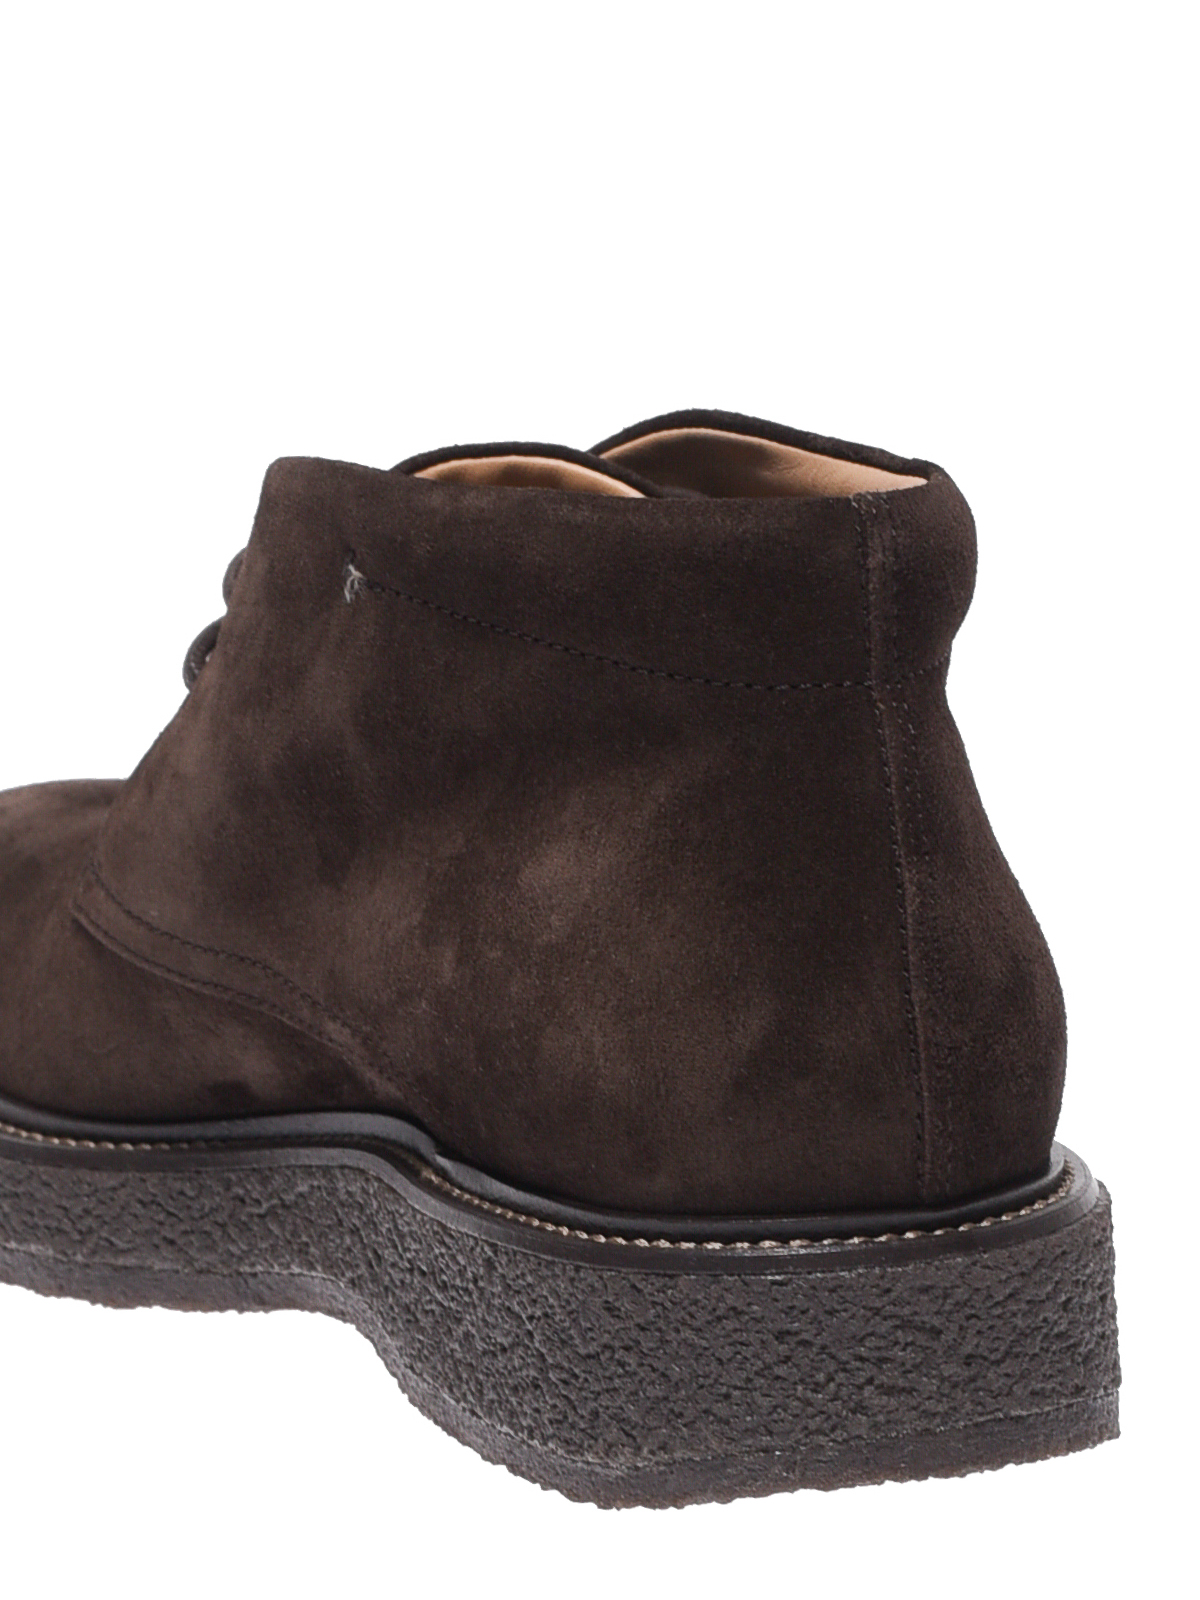 Tod'S - Dark brown suede desert ankle boots - ankle boots